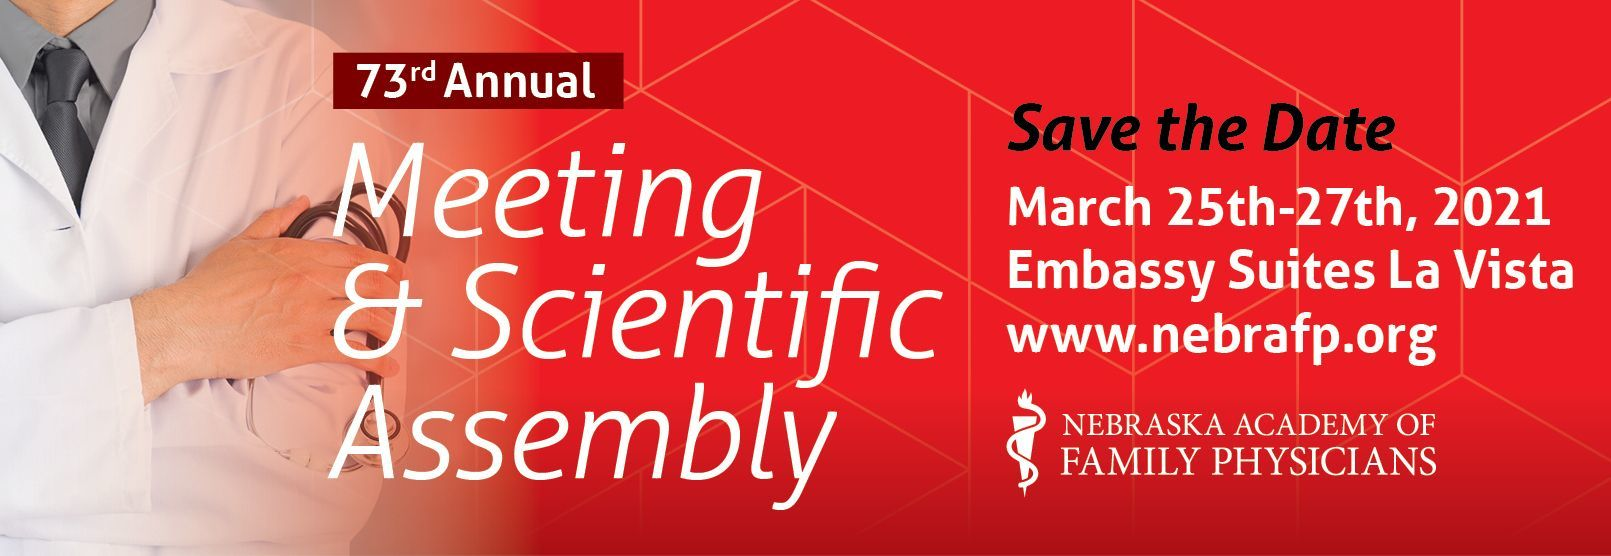 73rd Annual Meeting & Scientific Assembly